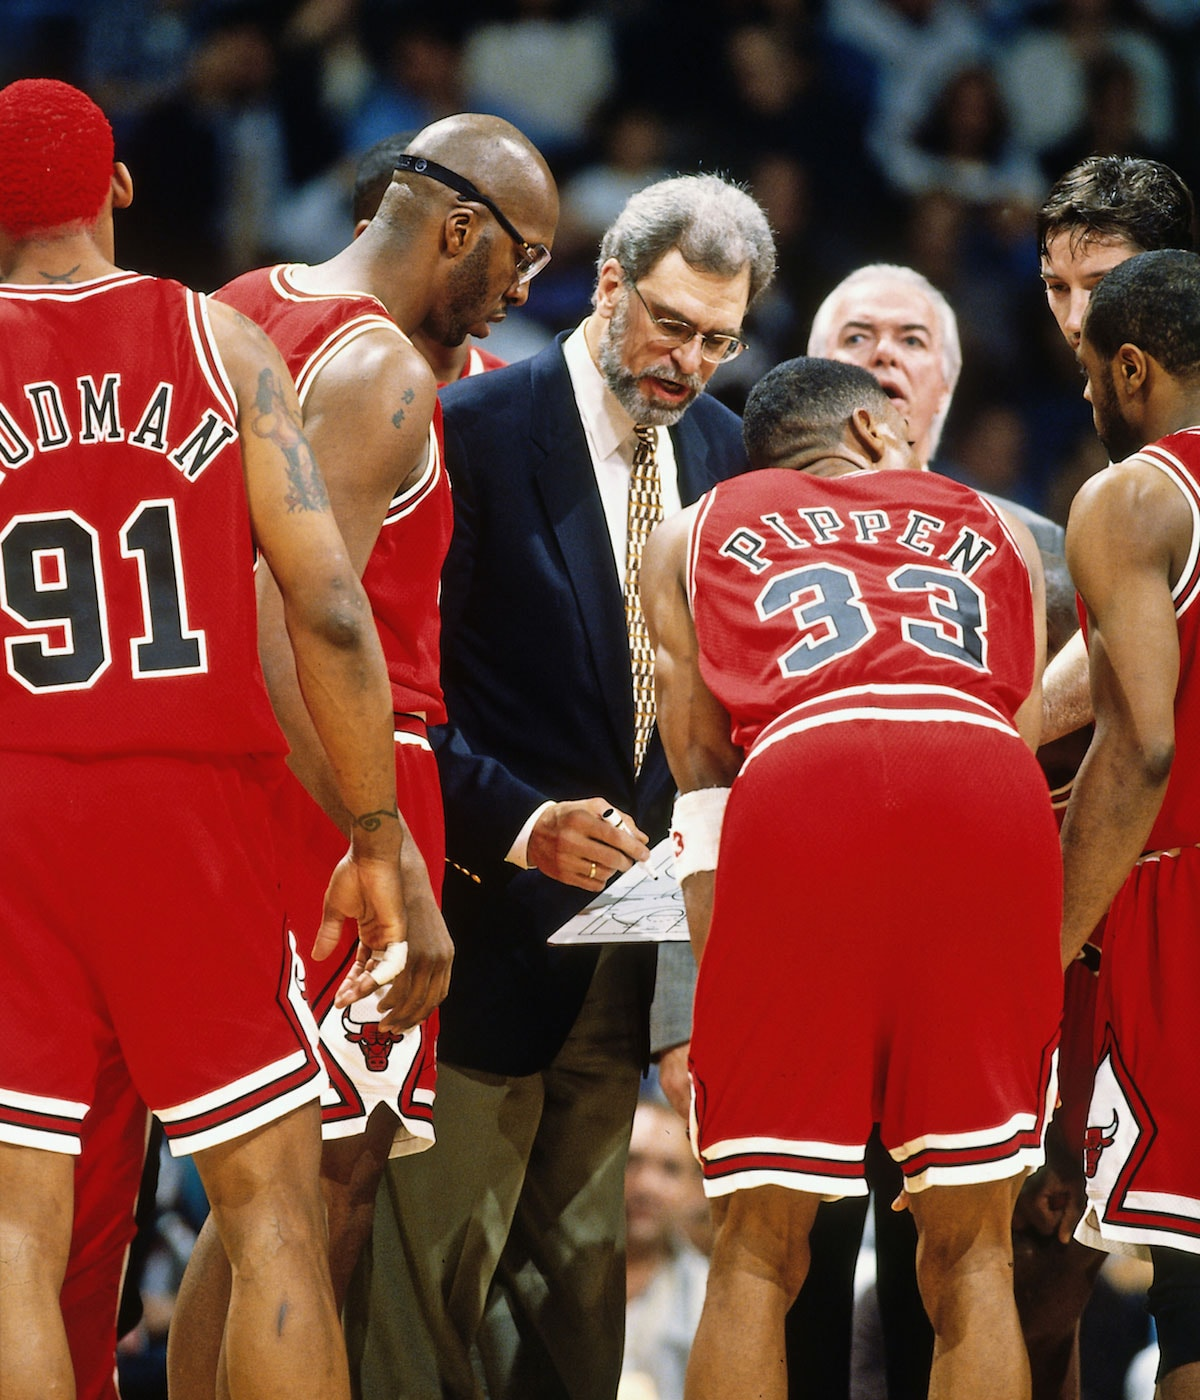 Head Coach Phil Jackson of the Chicago Bulls huddles his team against the Miami Heat on April 2, 1996 at Miami Arena in Miami, Florida.